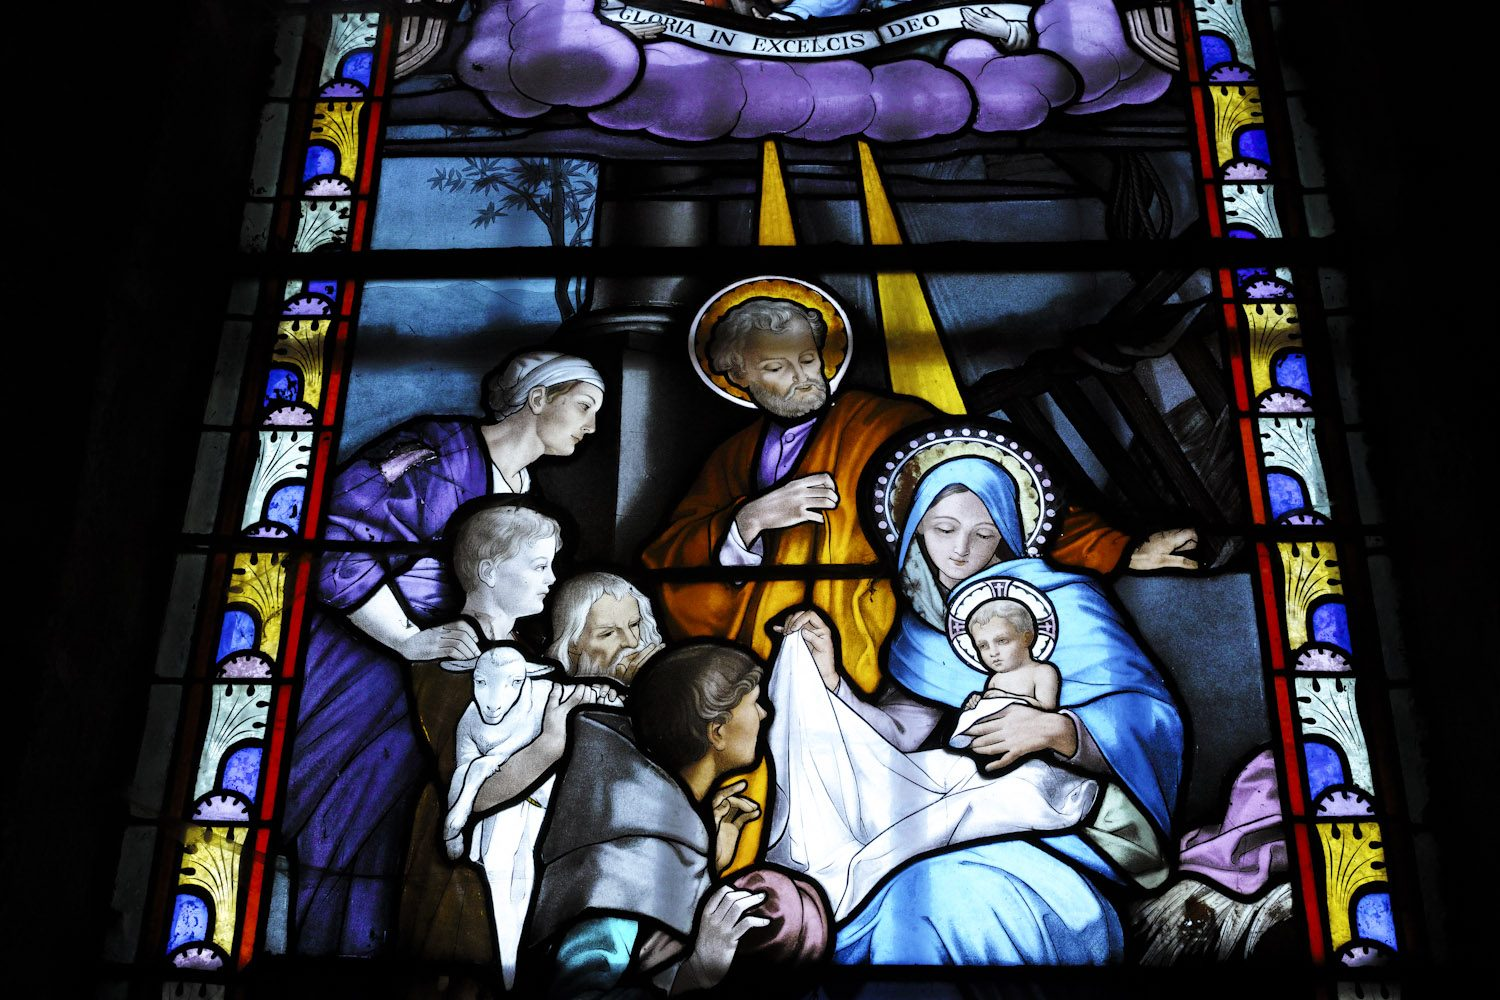 stained_glass_windows_cantal_france_finland_thevoyageur011